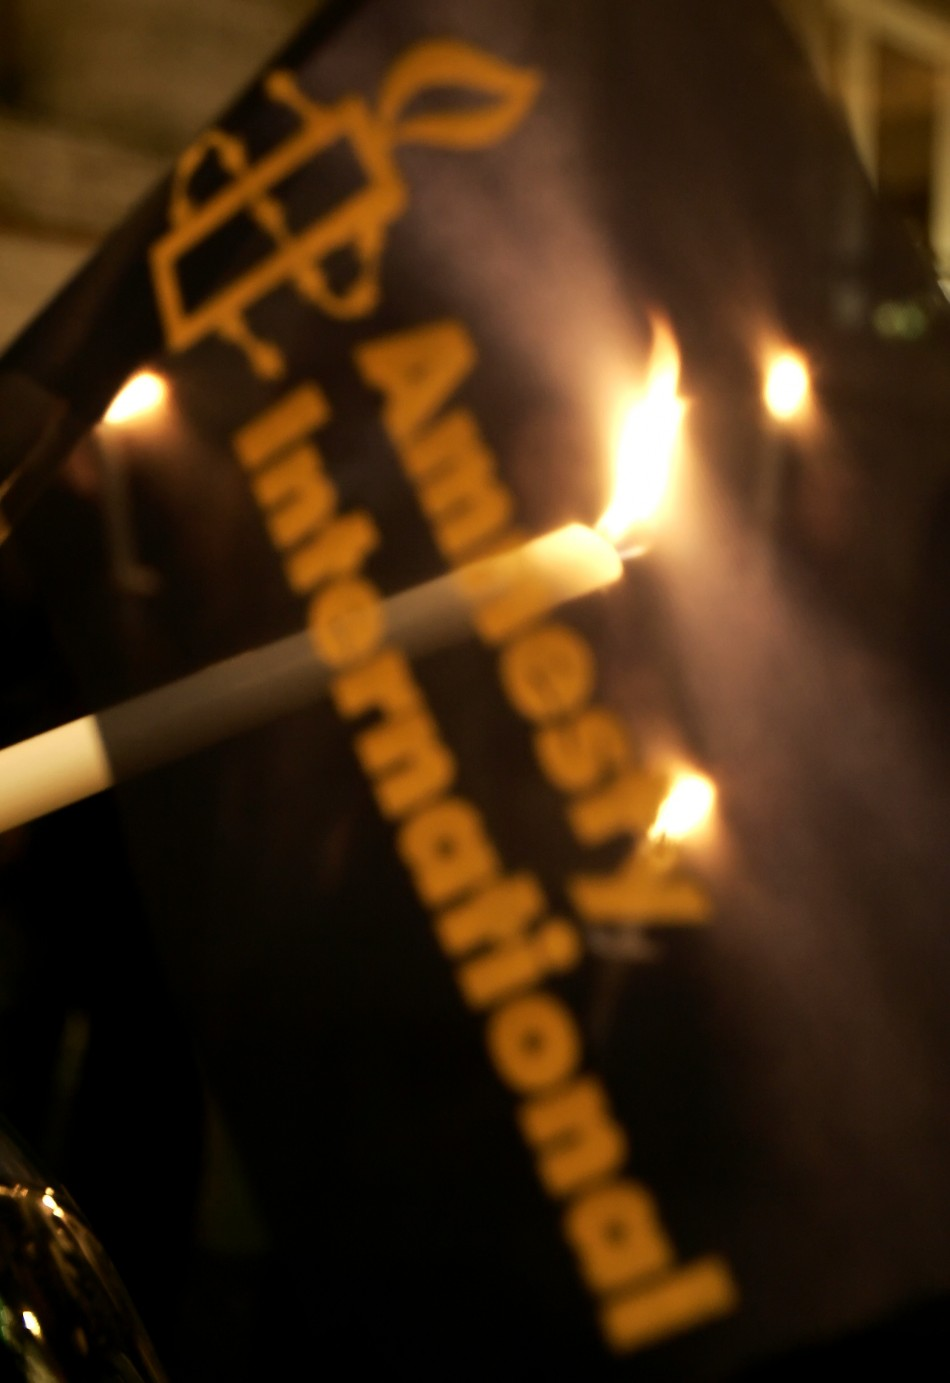 Amnesty International activists hold candles during protest against death penalty in front of US embassy in Rome